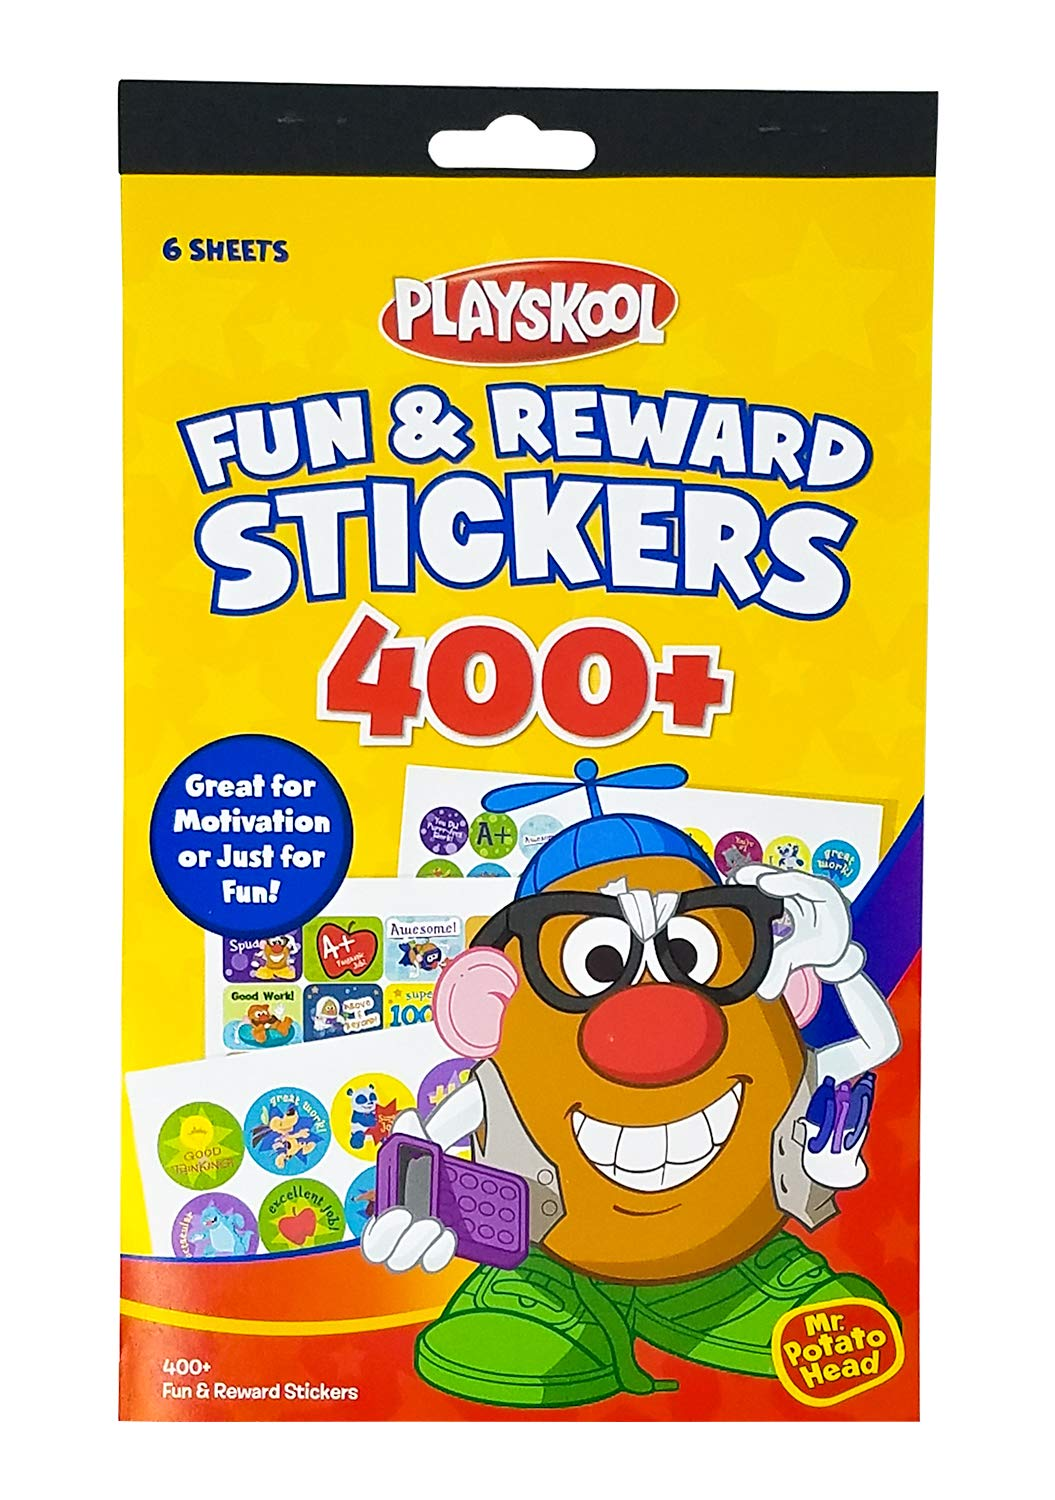 Strong-Willed Fun Stickers Rewards Crafts